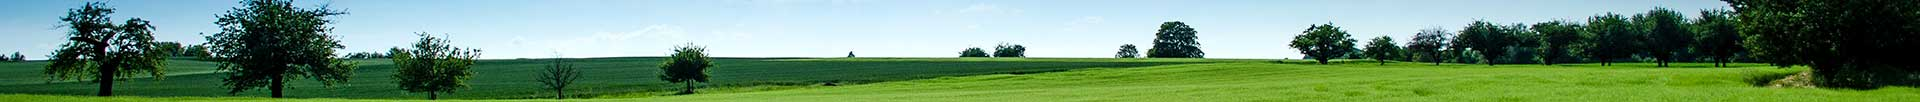 landscape view of field with trees with blue sky